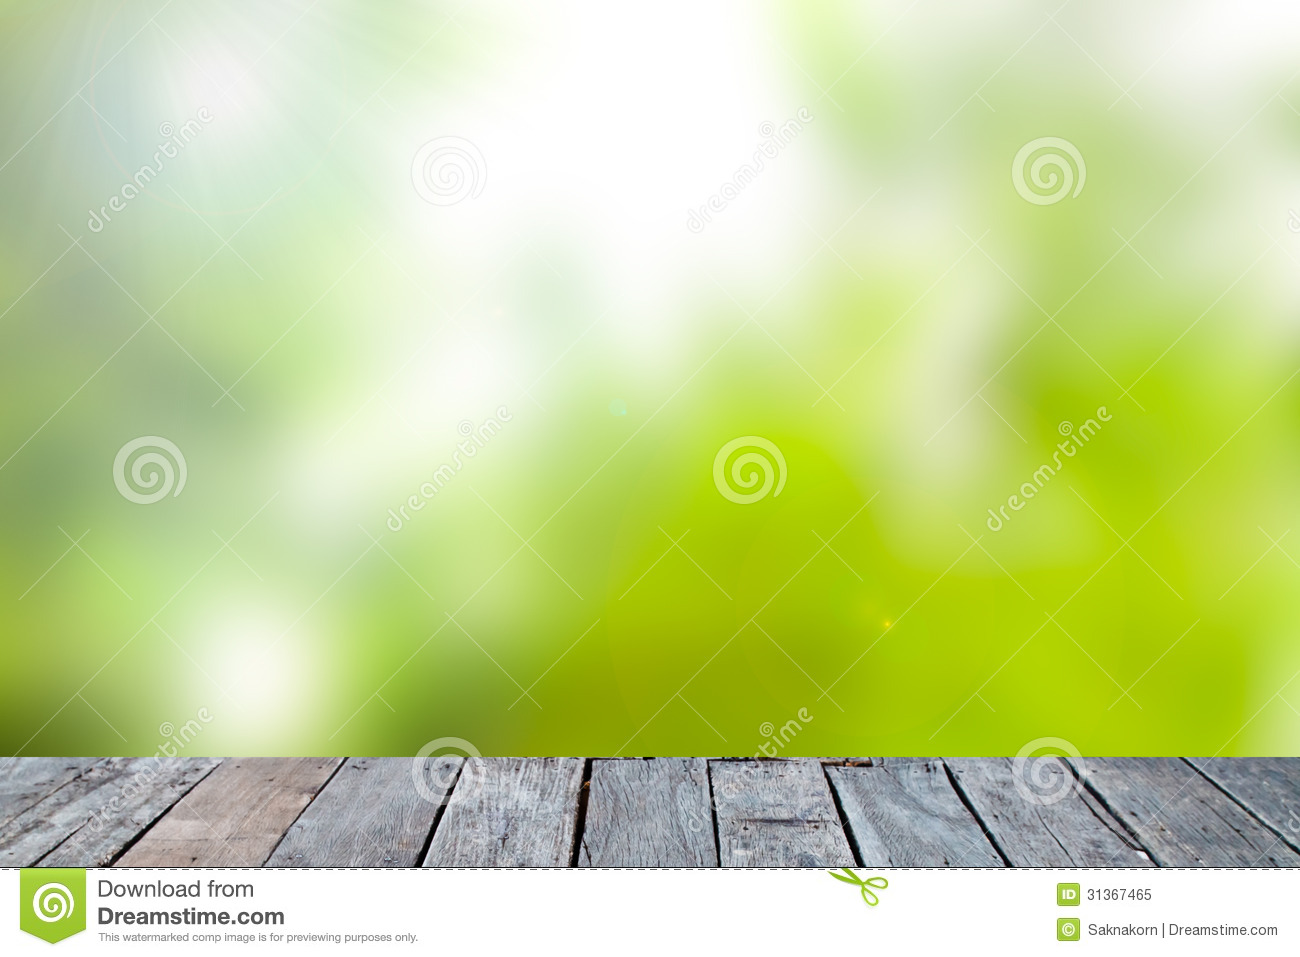 Green Abstract Blur Nature Background Stock Image - Image: 31367465